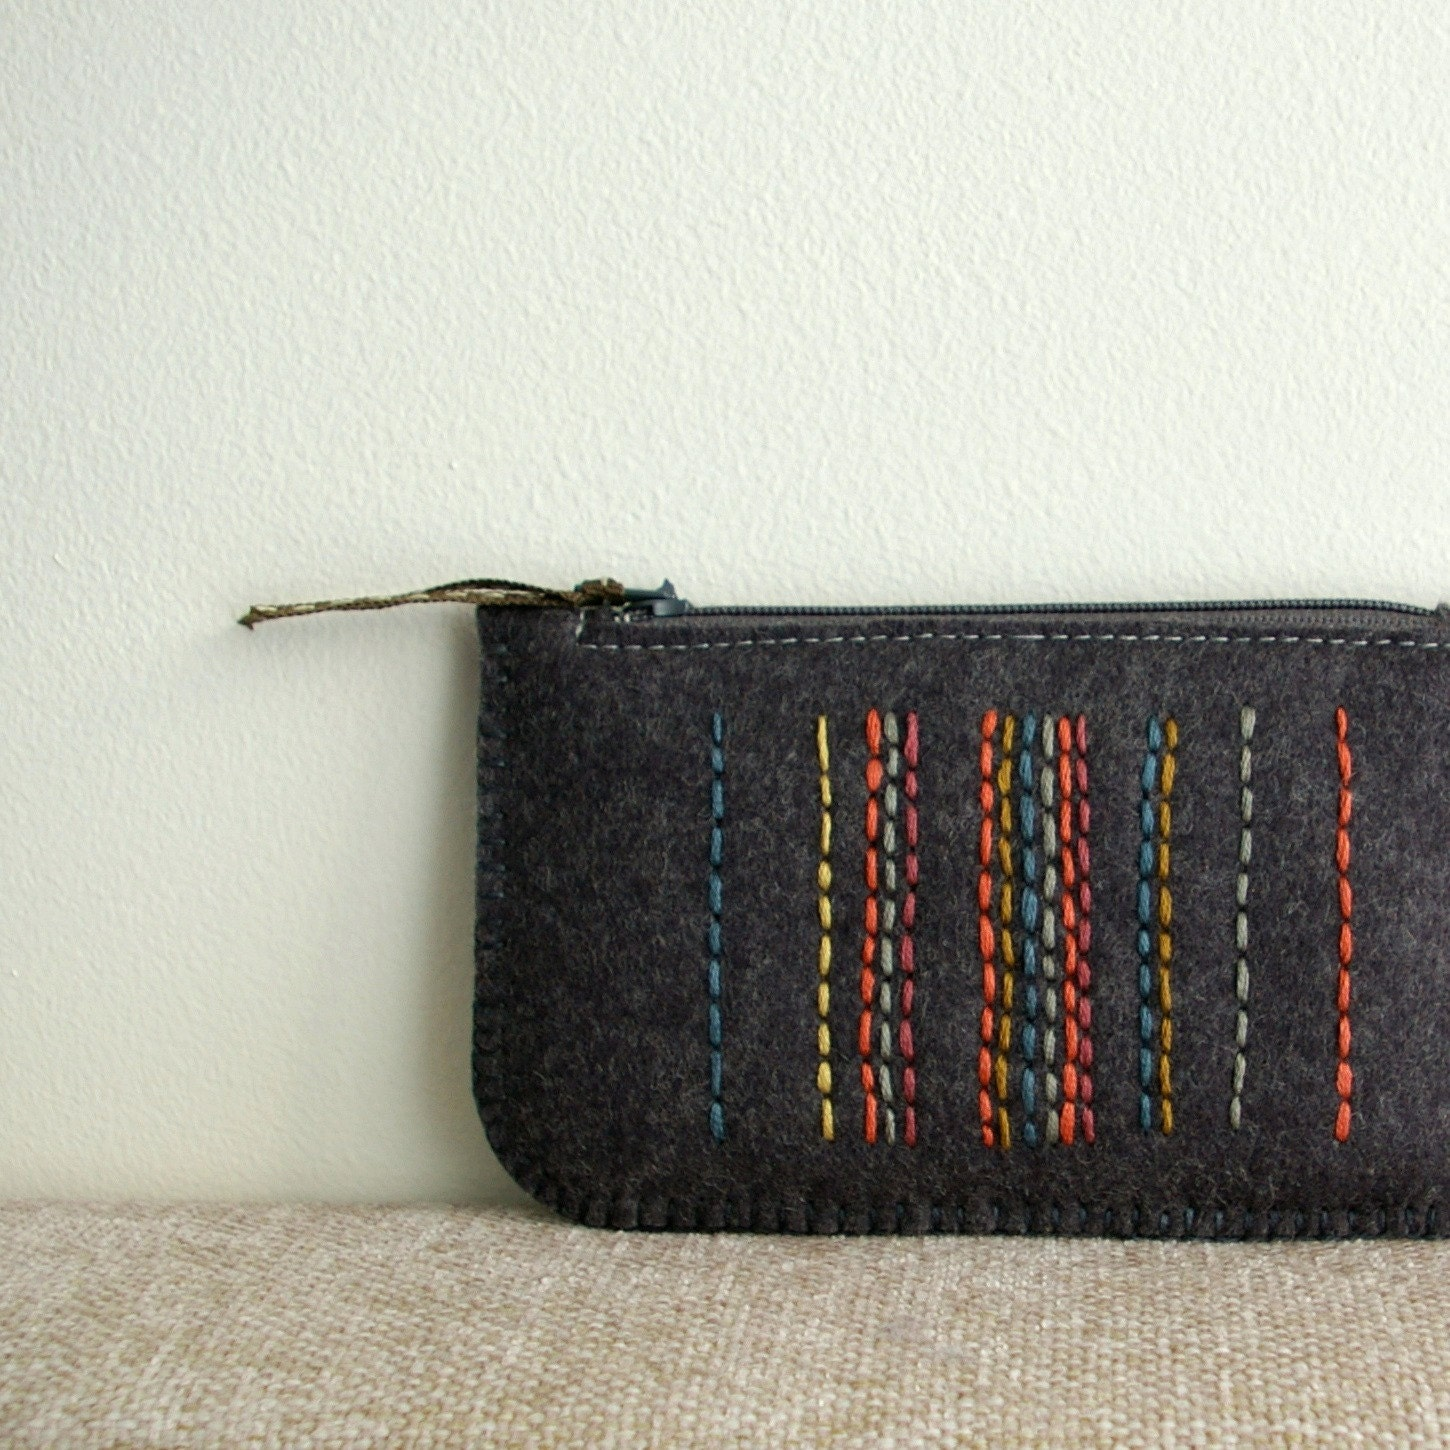 Licorice in Spice Market: Hand-Embroidered Wool Felt Coin Purse or iPhone Cozy - LoftFullOfGoodies